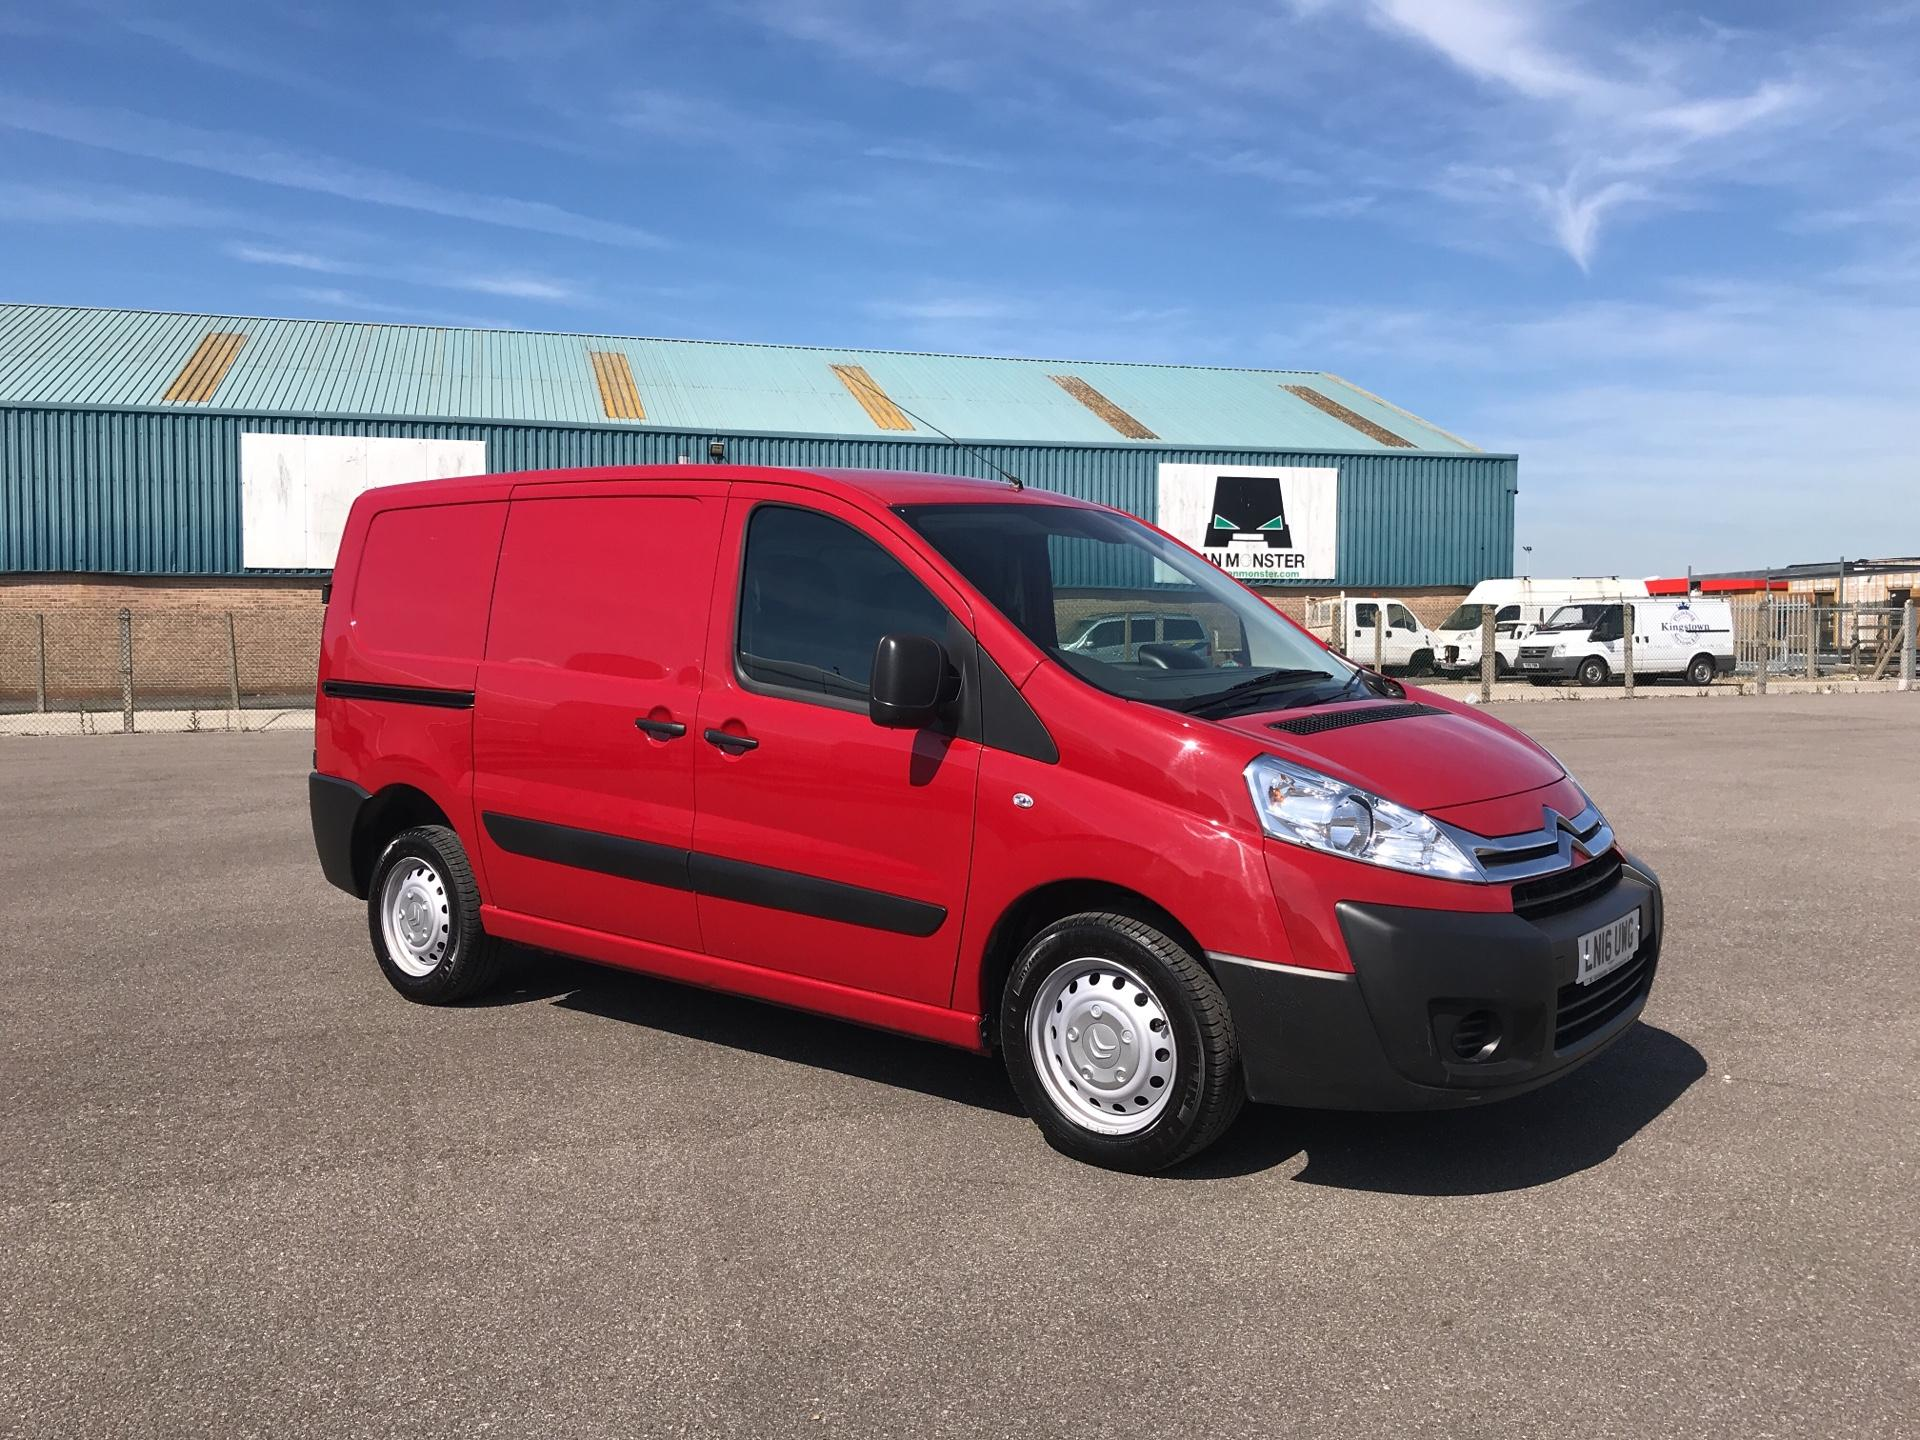 2016 Citroen Dispatch L1 DIESEL 1000 1.6 HDI H1 VAN ENTERPRISE EURO 4/5. AIR CON, SAT NAV (LN16UWG) Image 1